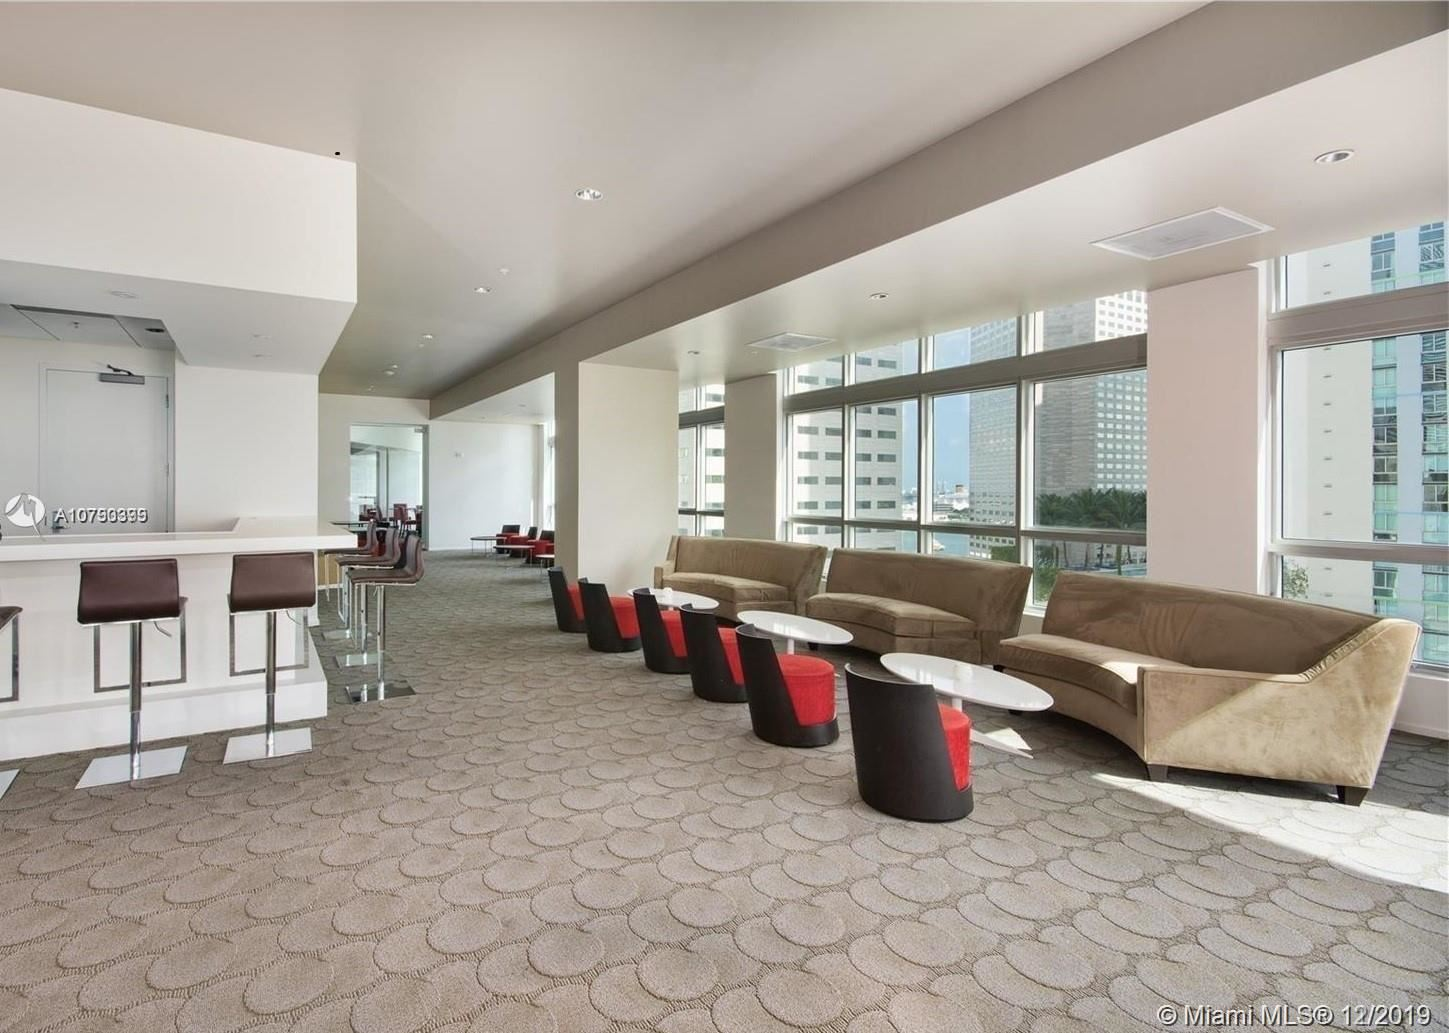 Photo 19 of Listing MLS a10790399 in 300 S BISCAYNE BLVD #L-410 Miami FL 33131